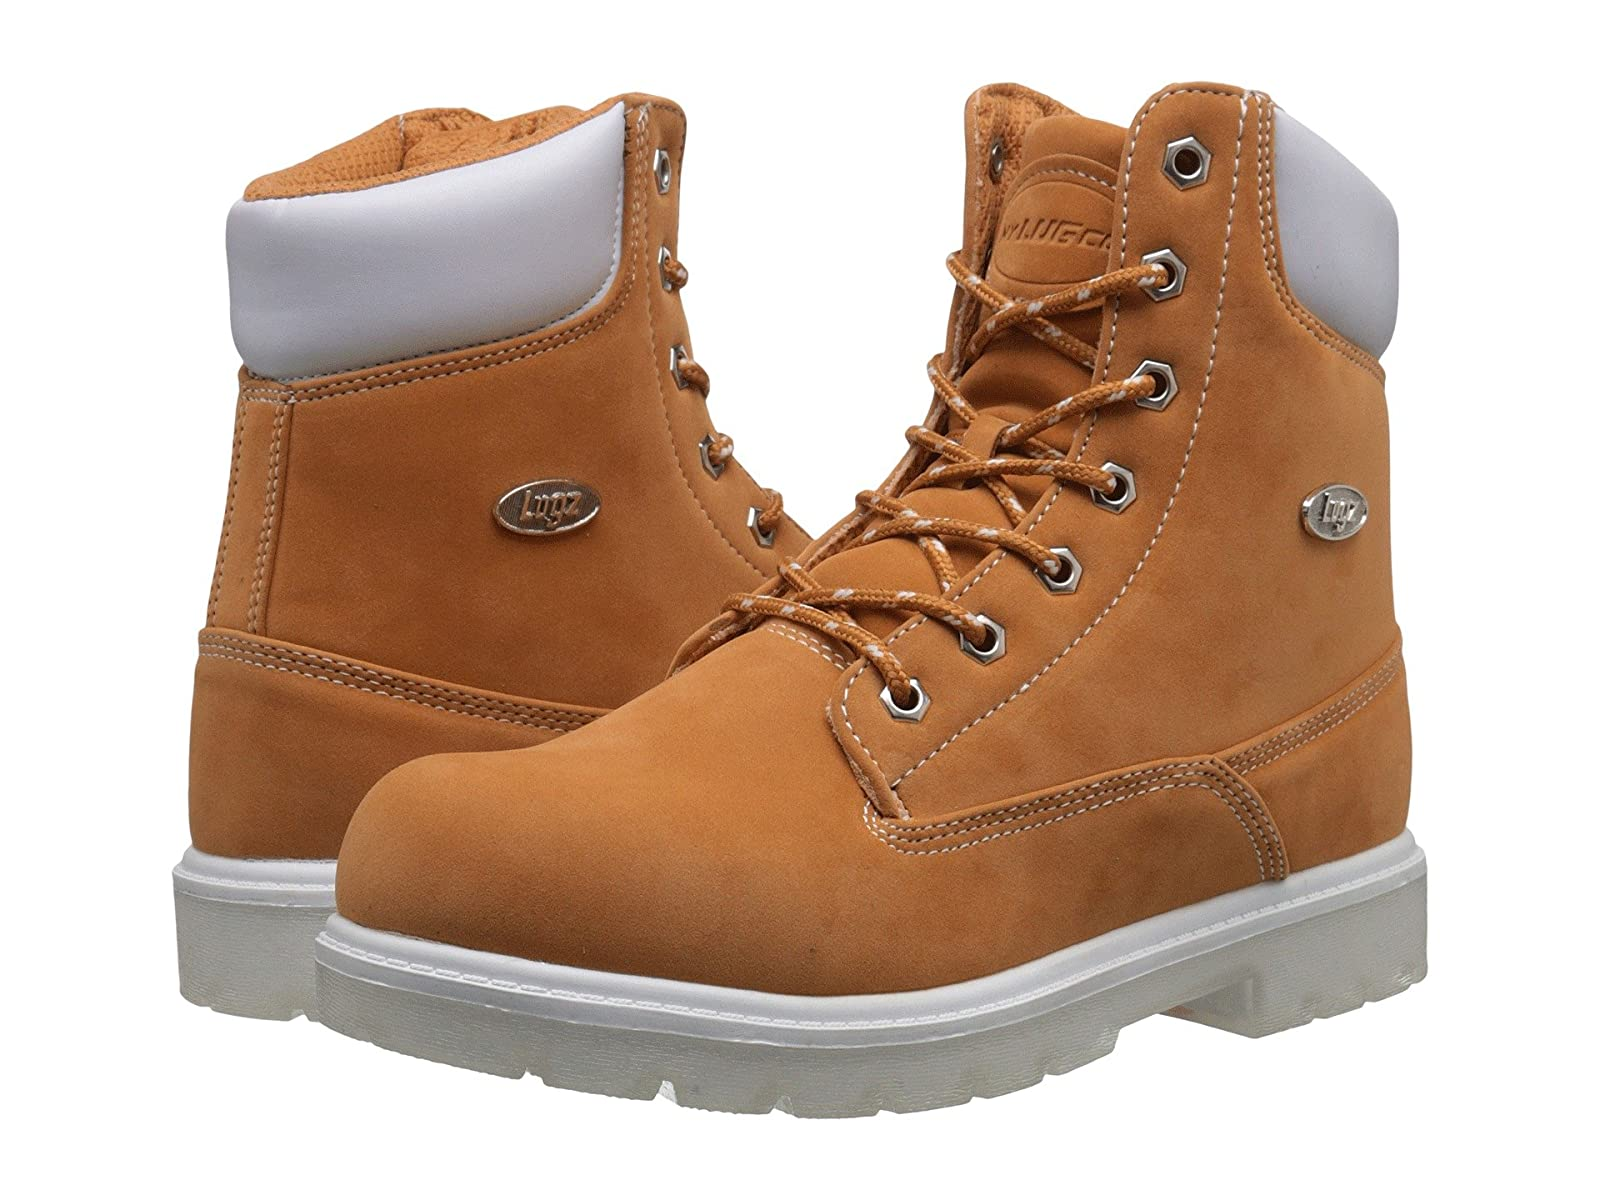 Lugz Empire Hi TLCheap and distinctive eye-catching shoes